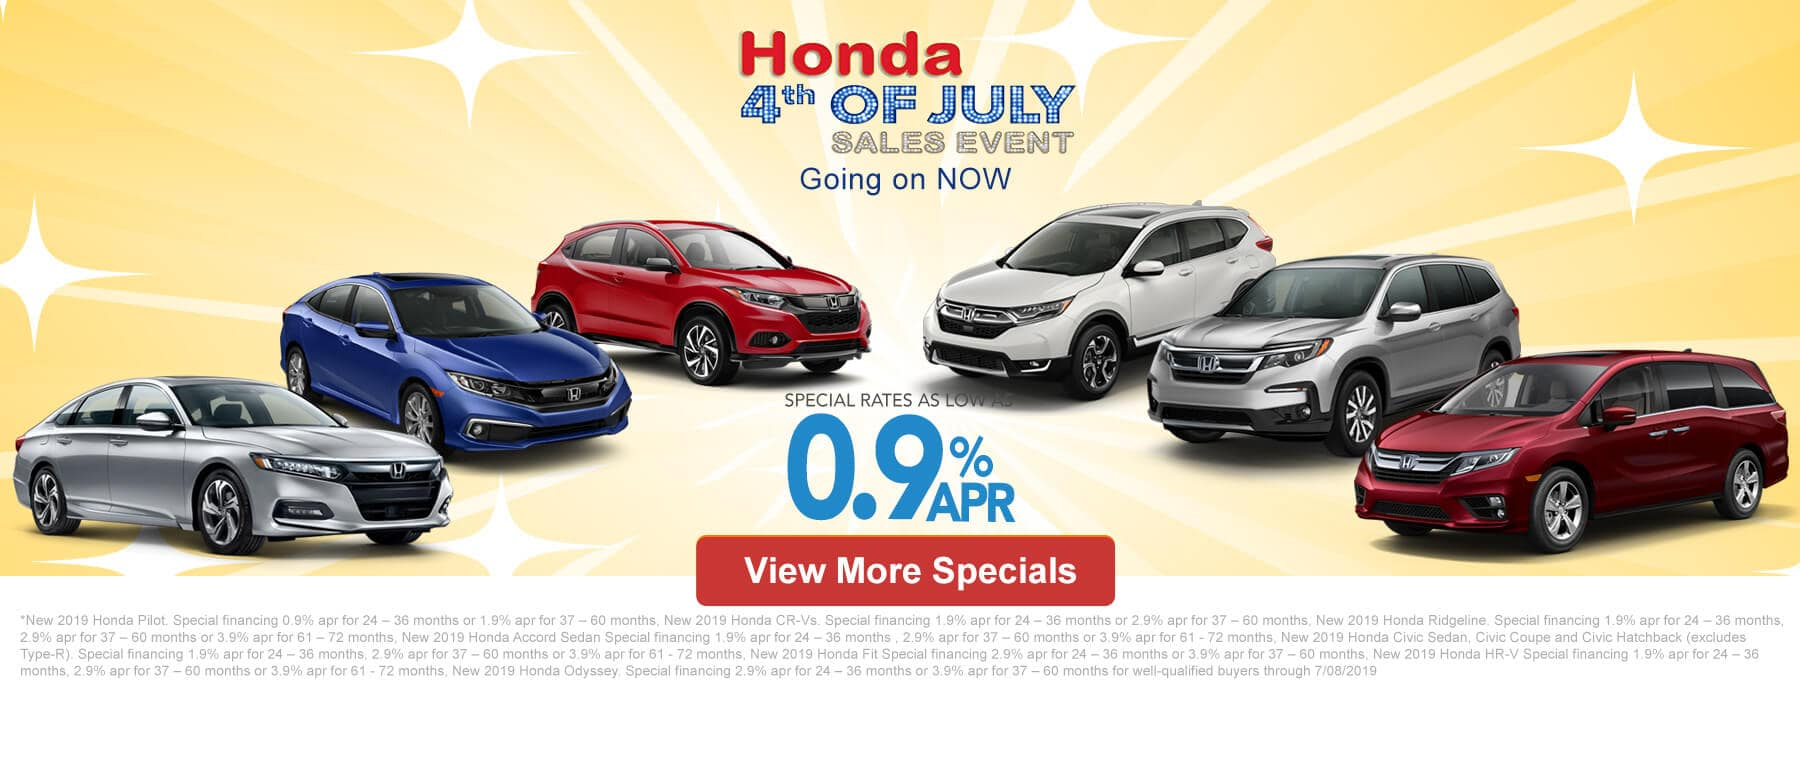 99ae221ee693 Before you fire up the grill or settle down for the fireworks on the fourth,  visit Patty Peck Honda in Ridgeland, MS for our Honda 4th of July Sales  Event ...